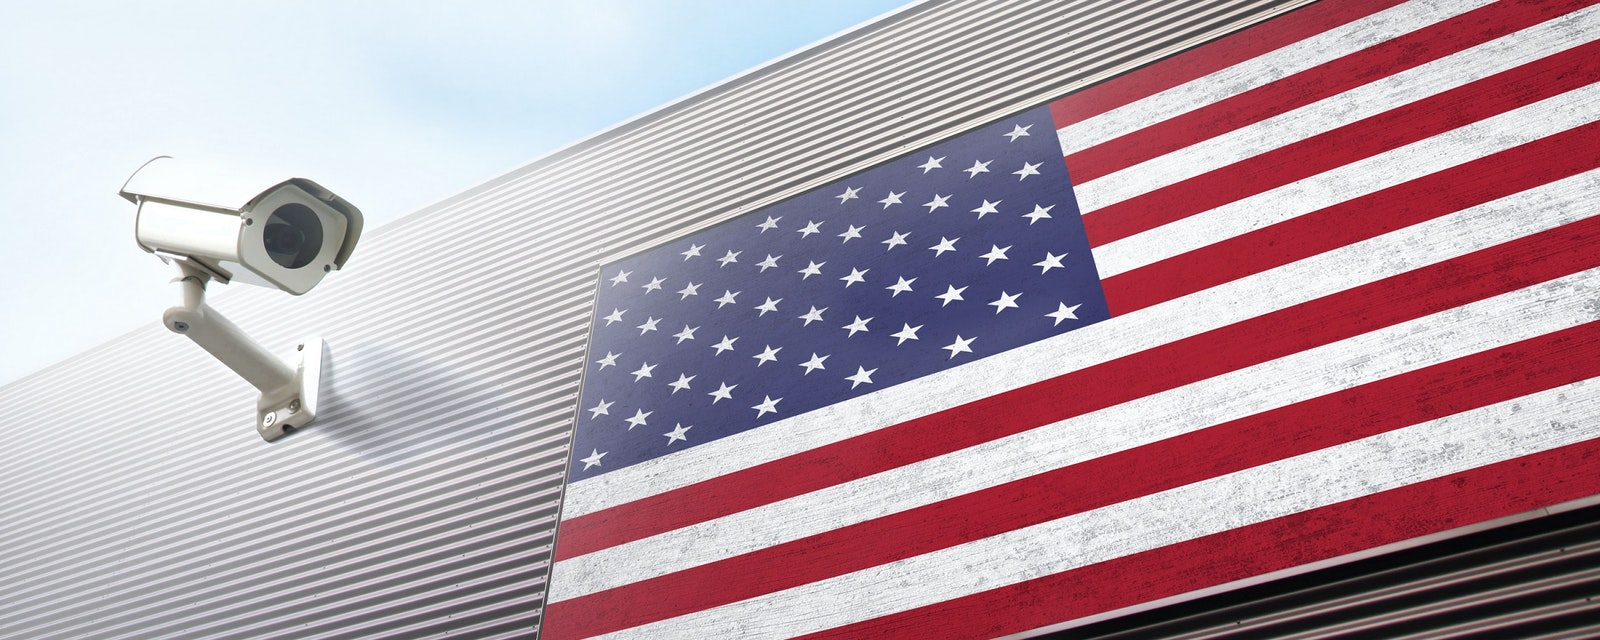 United,States,Of,America,Flag,And,Security,Camera,On,New